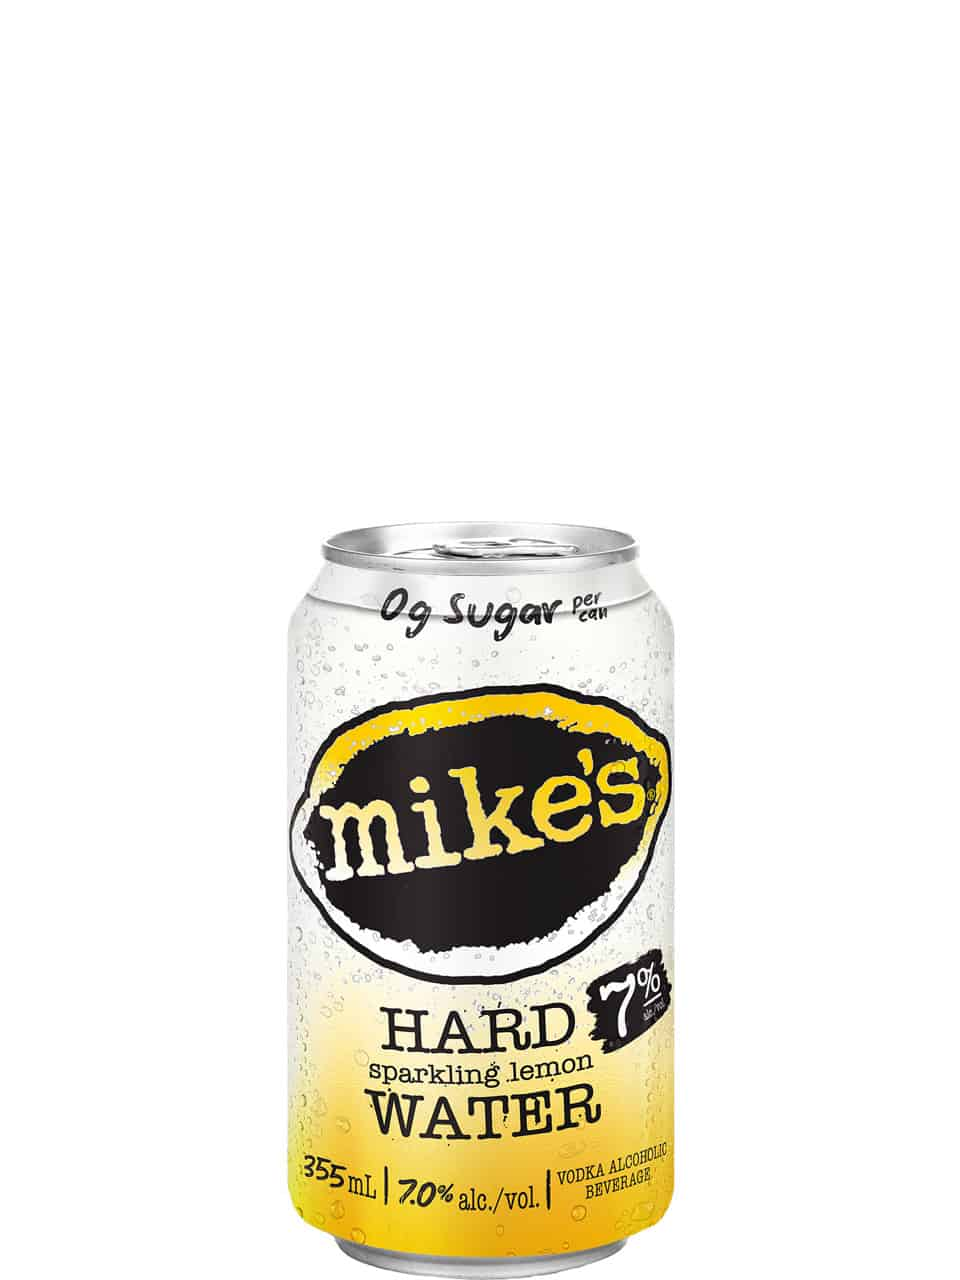 Mike's Hard Sparkling Lemon Water 6 Pack Cans